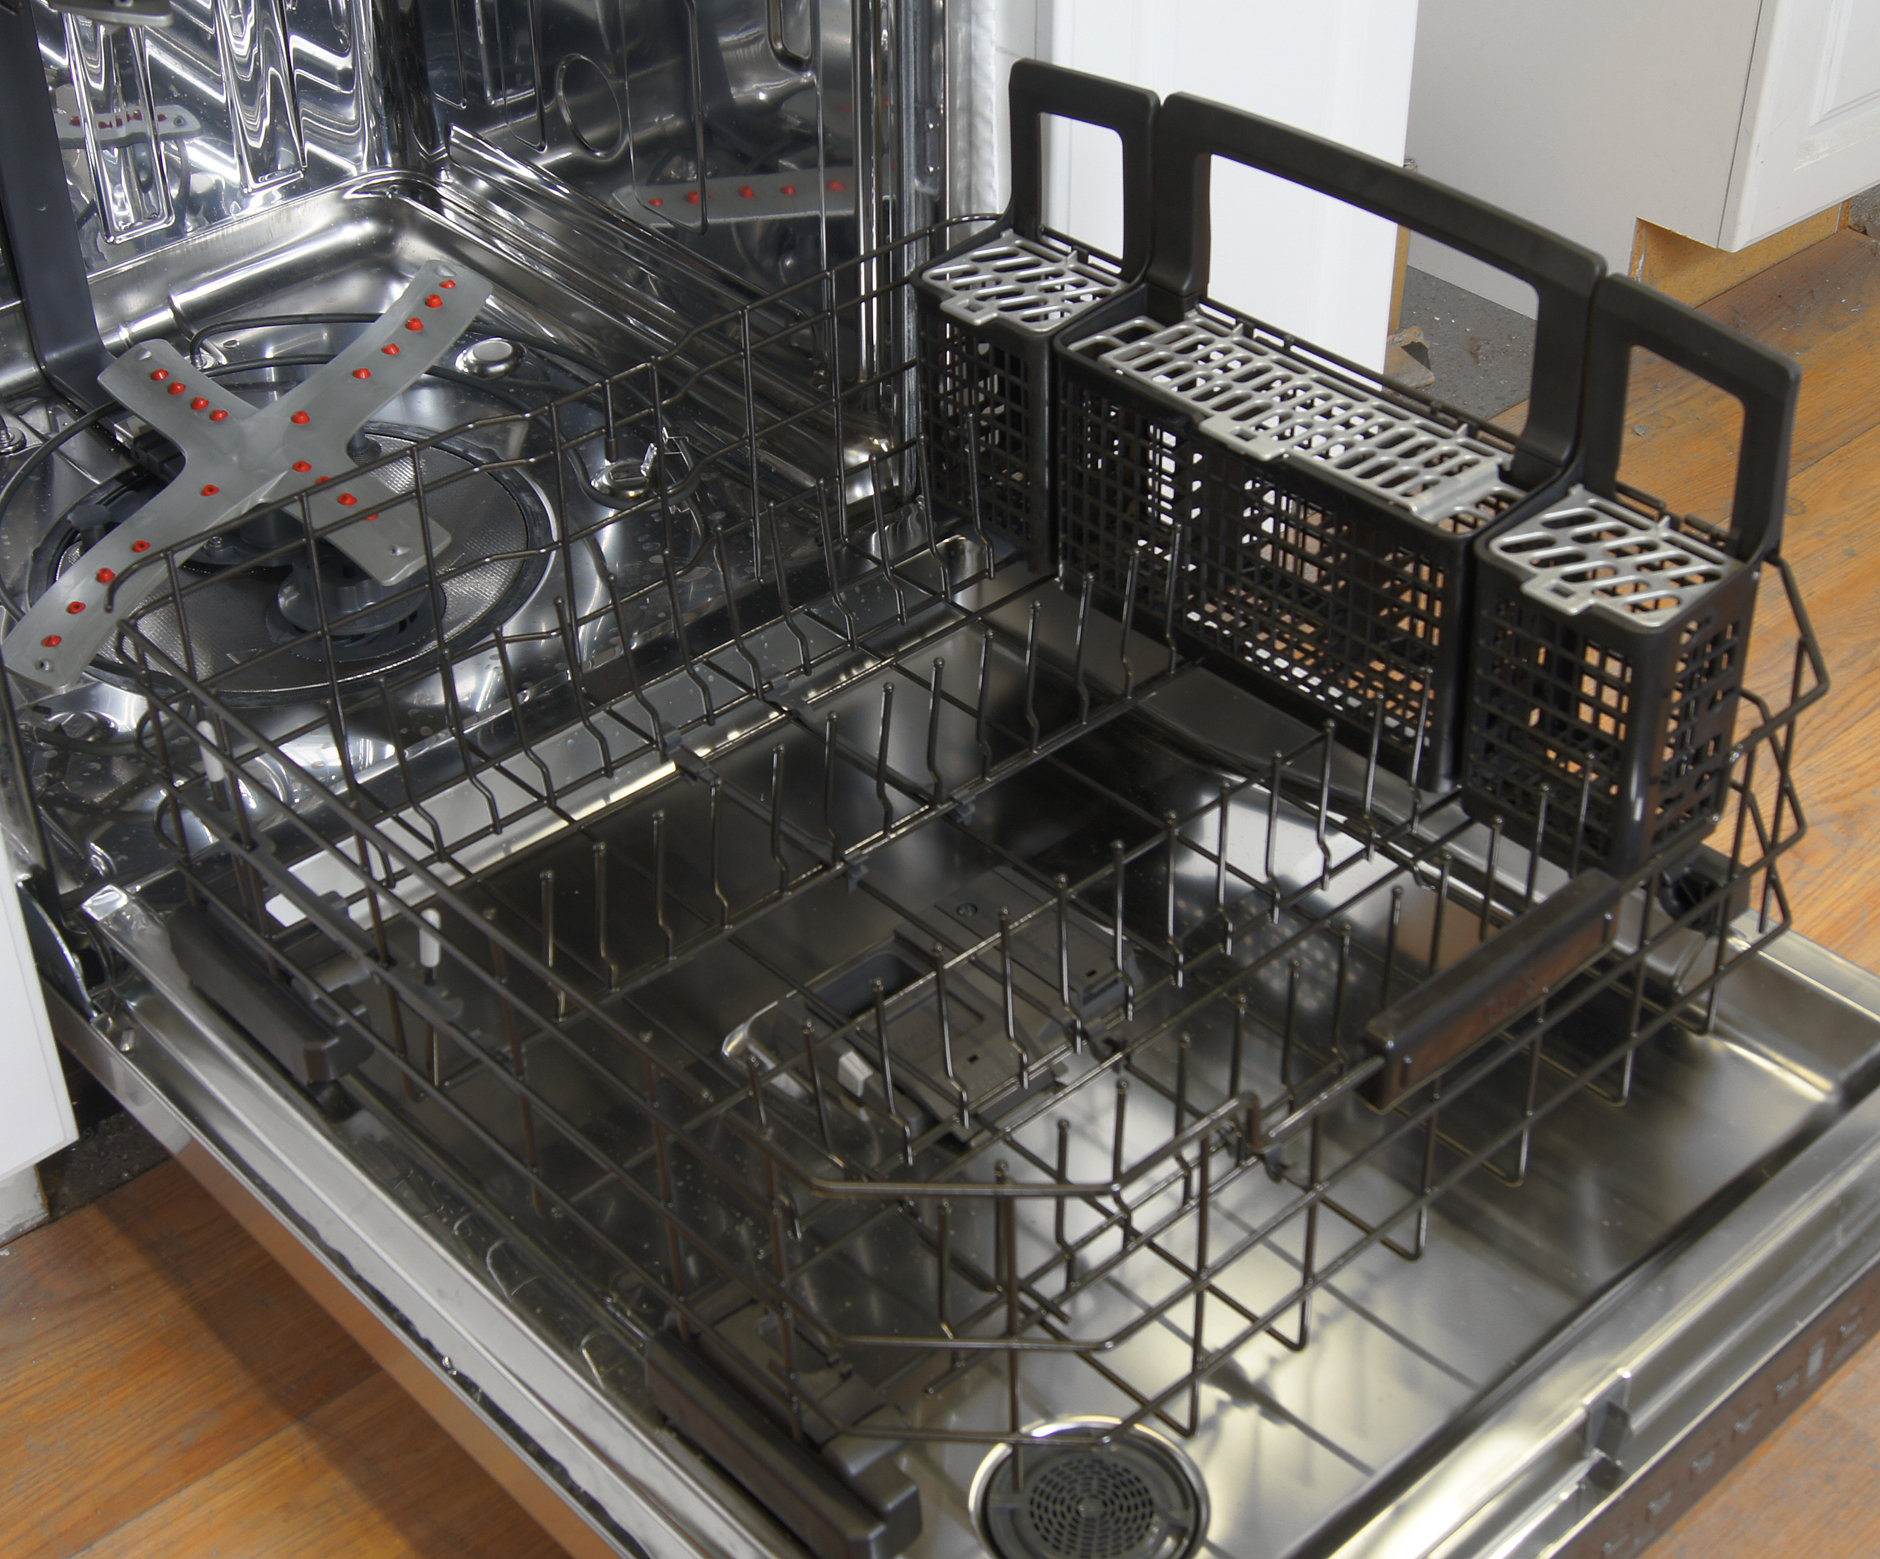 GE Cafe CDT725SSFSS bottom rack